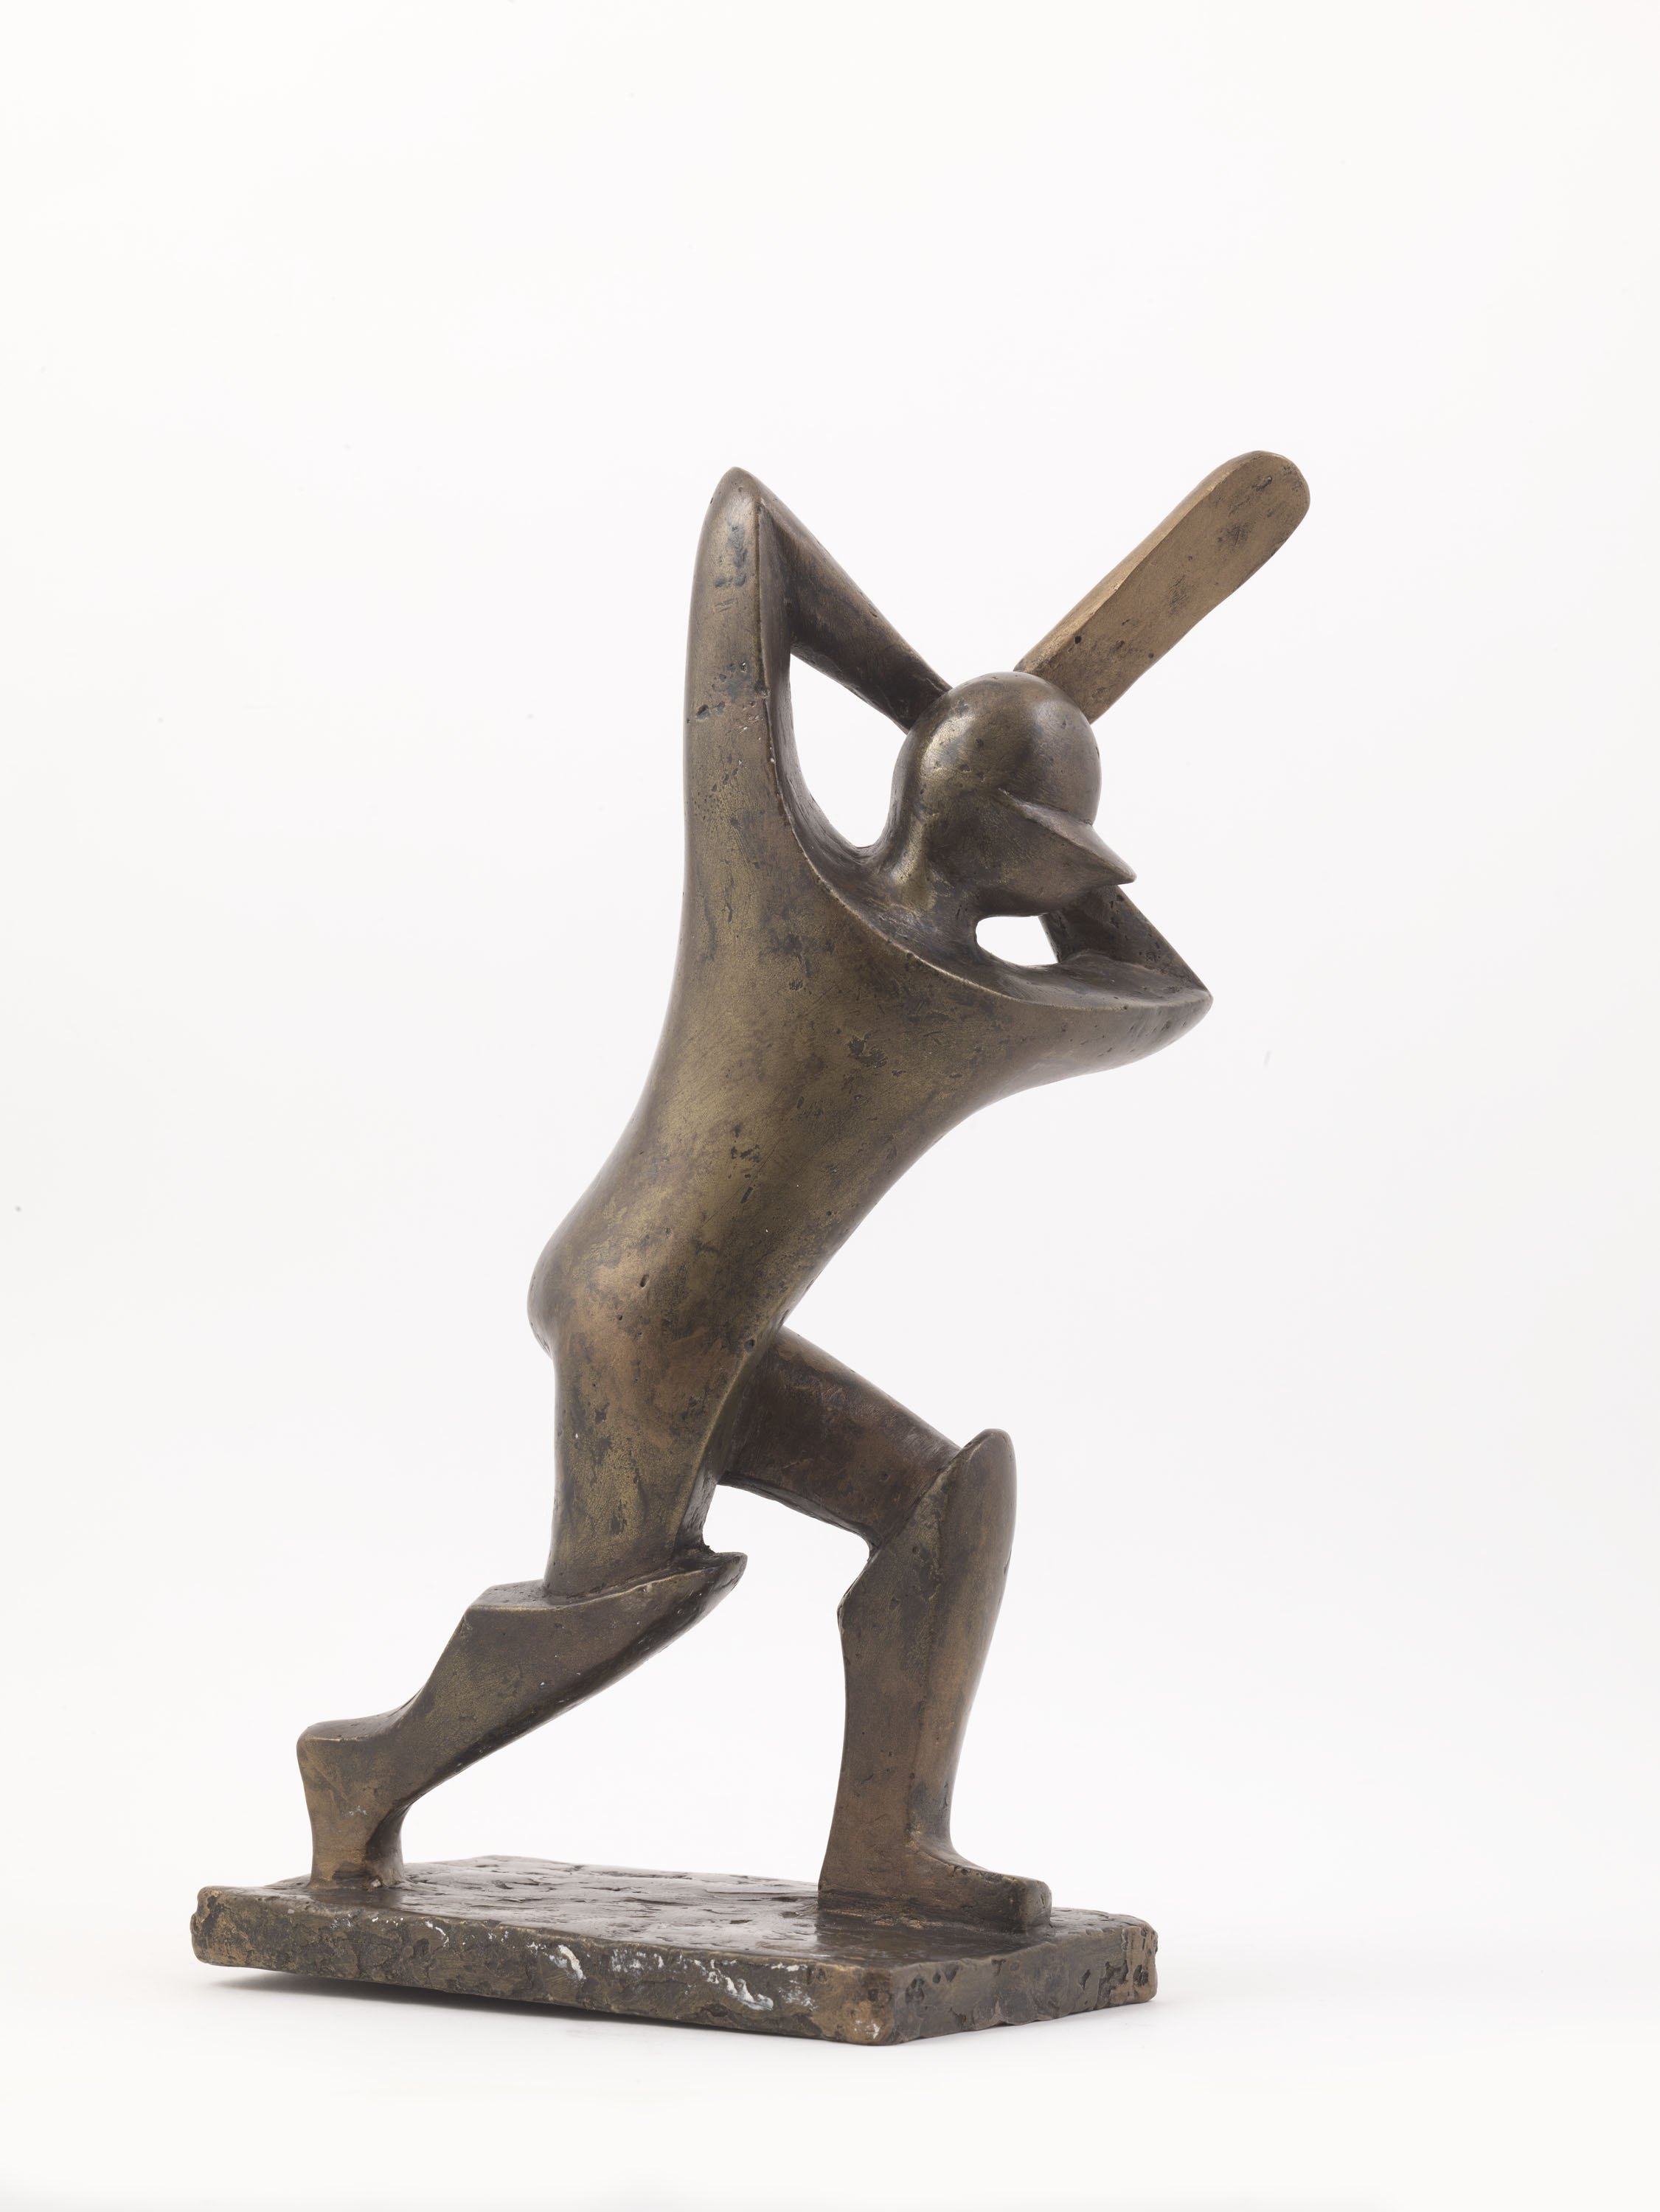 Cricket Player (Bronze) by Julia Godsiff